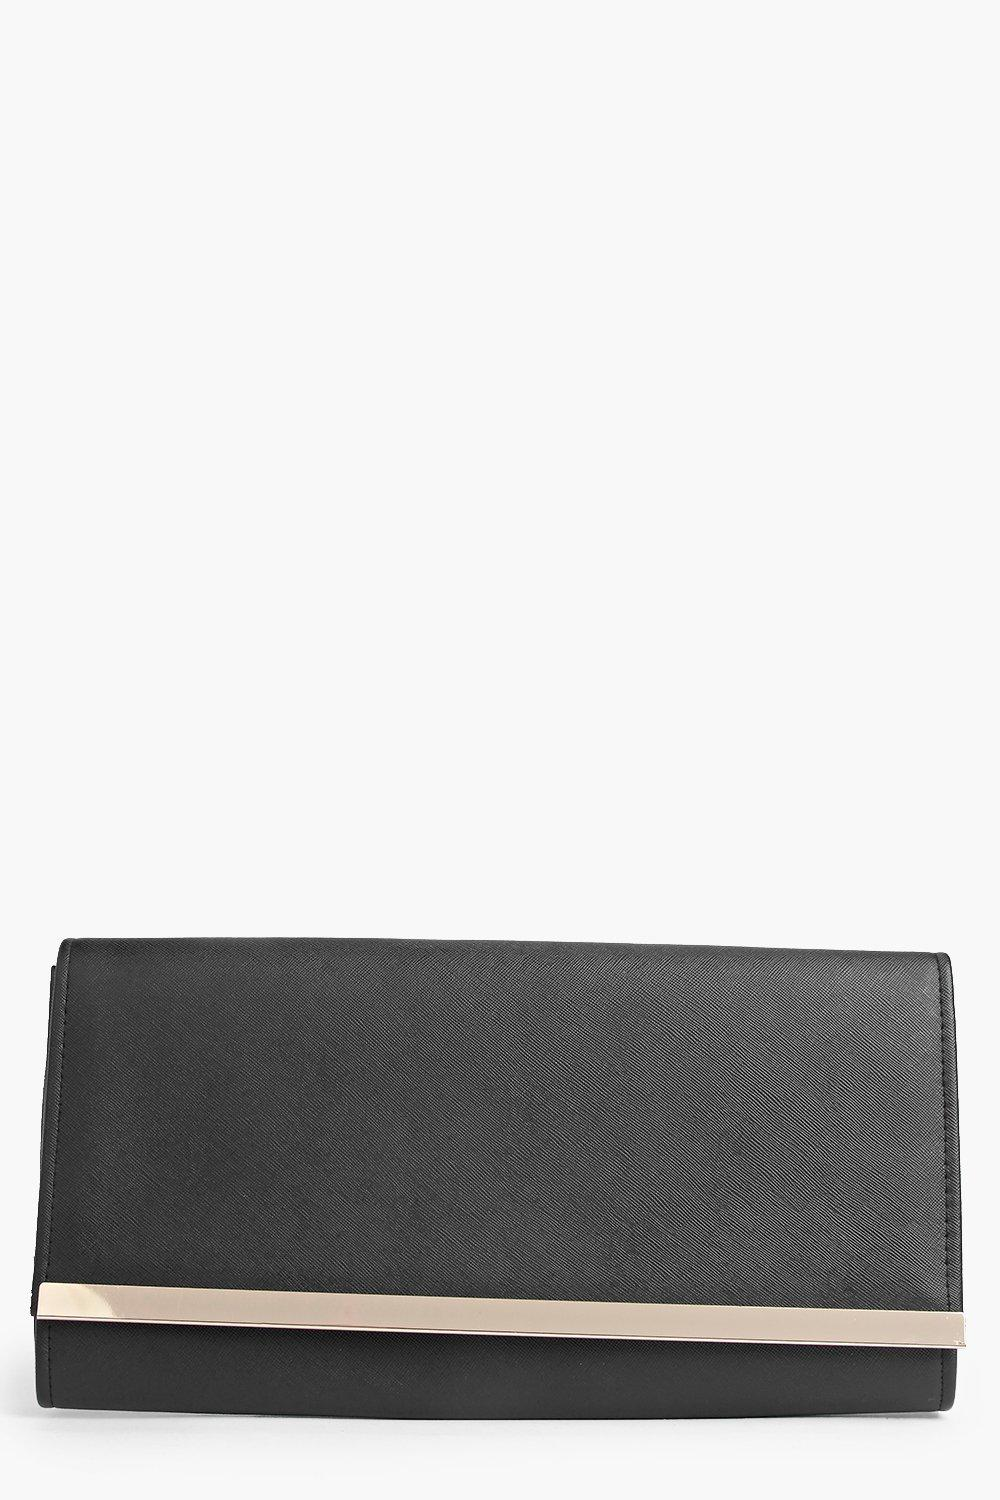 PU Metal Bar Clutch Bag black